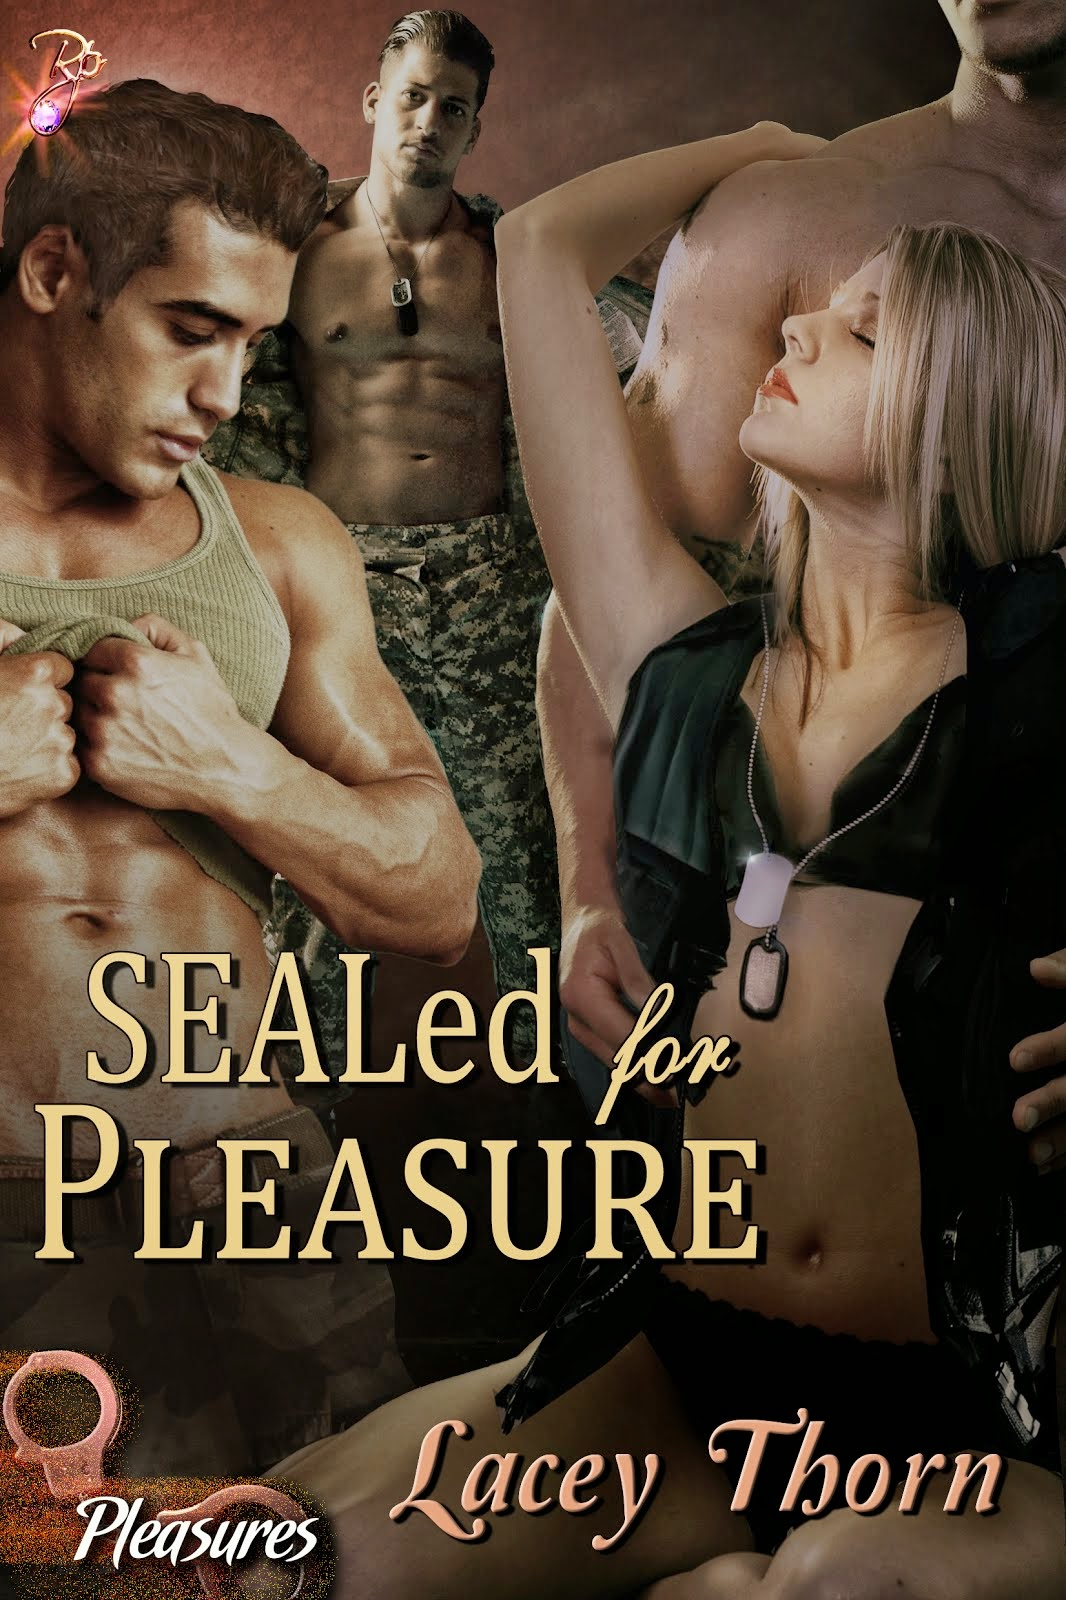 SEALed for Pleasure